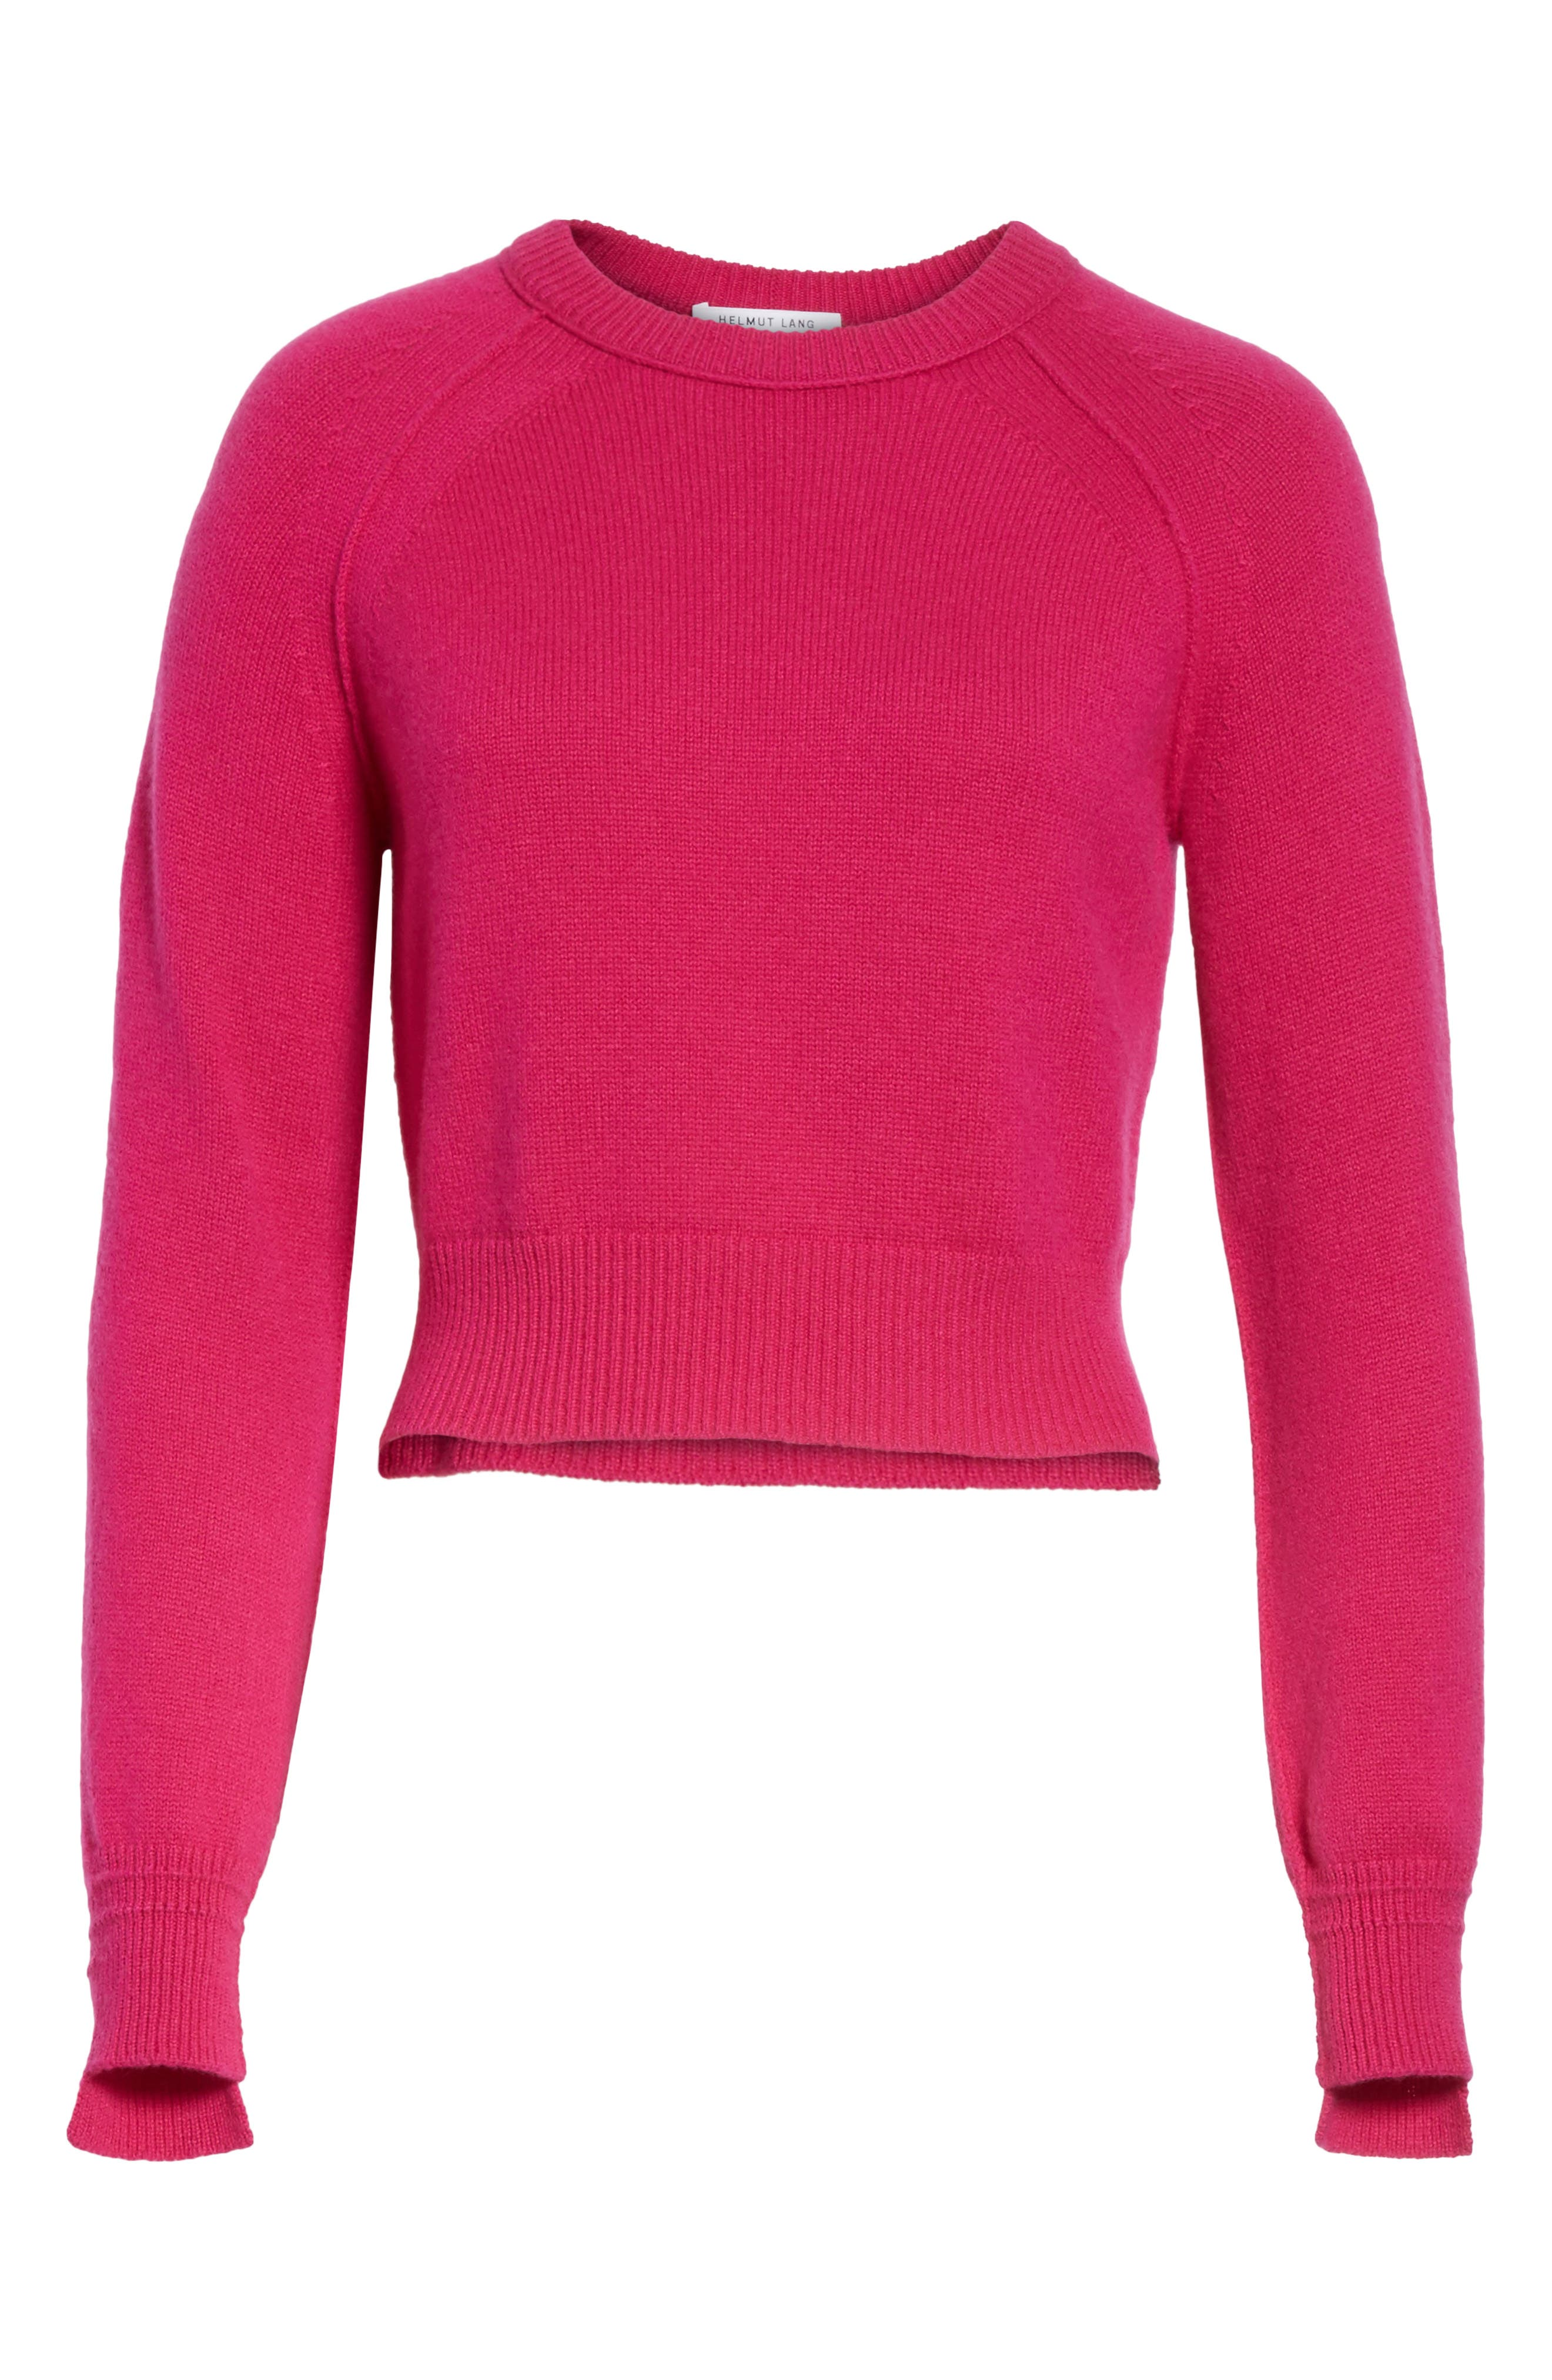 Cashmere Crop Sweater,                             Alternate thumbnail 6, color,                             655